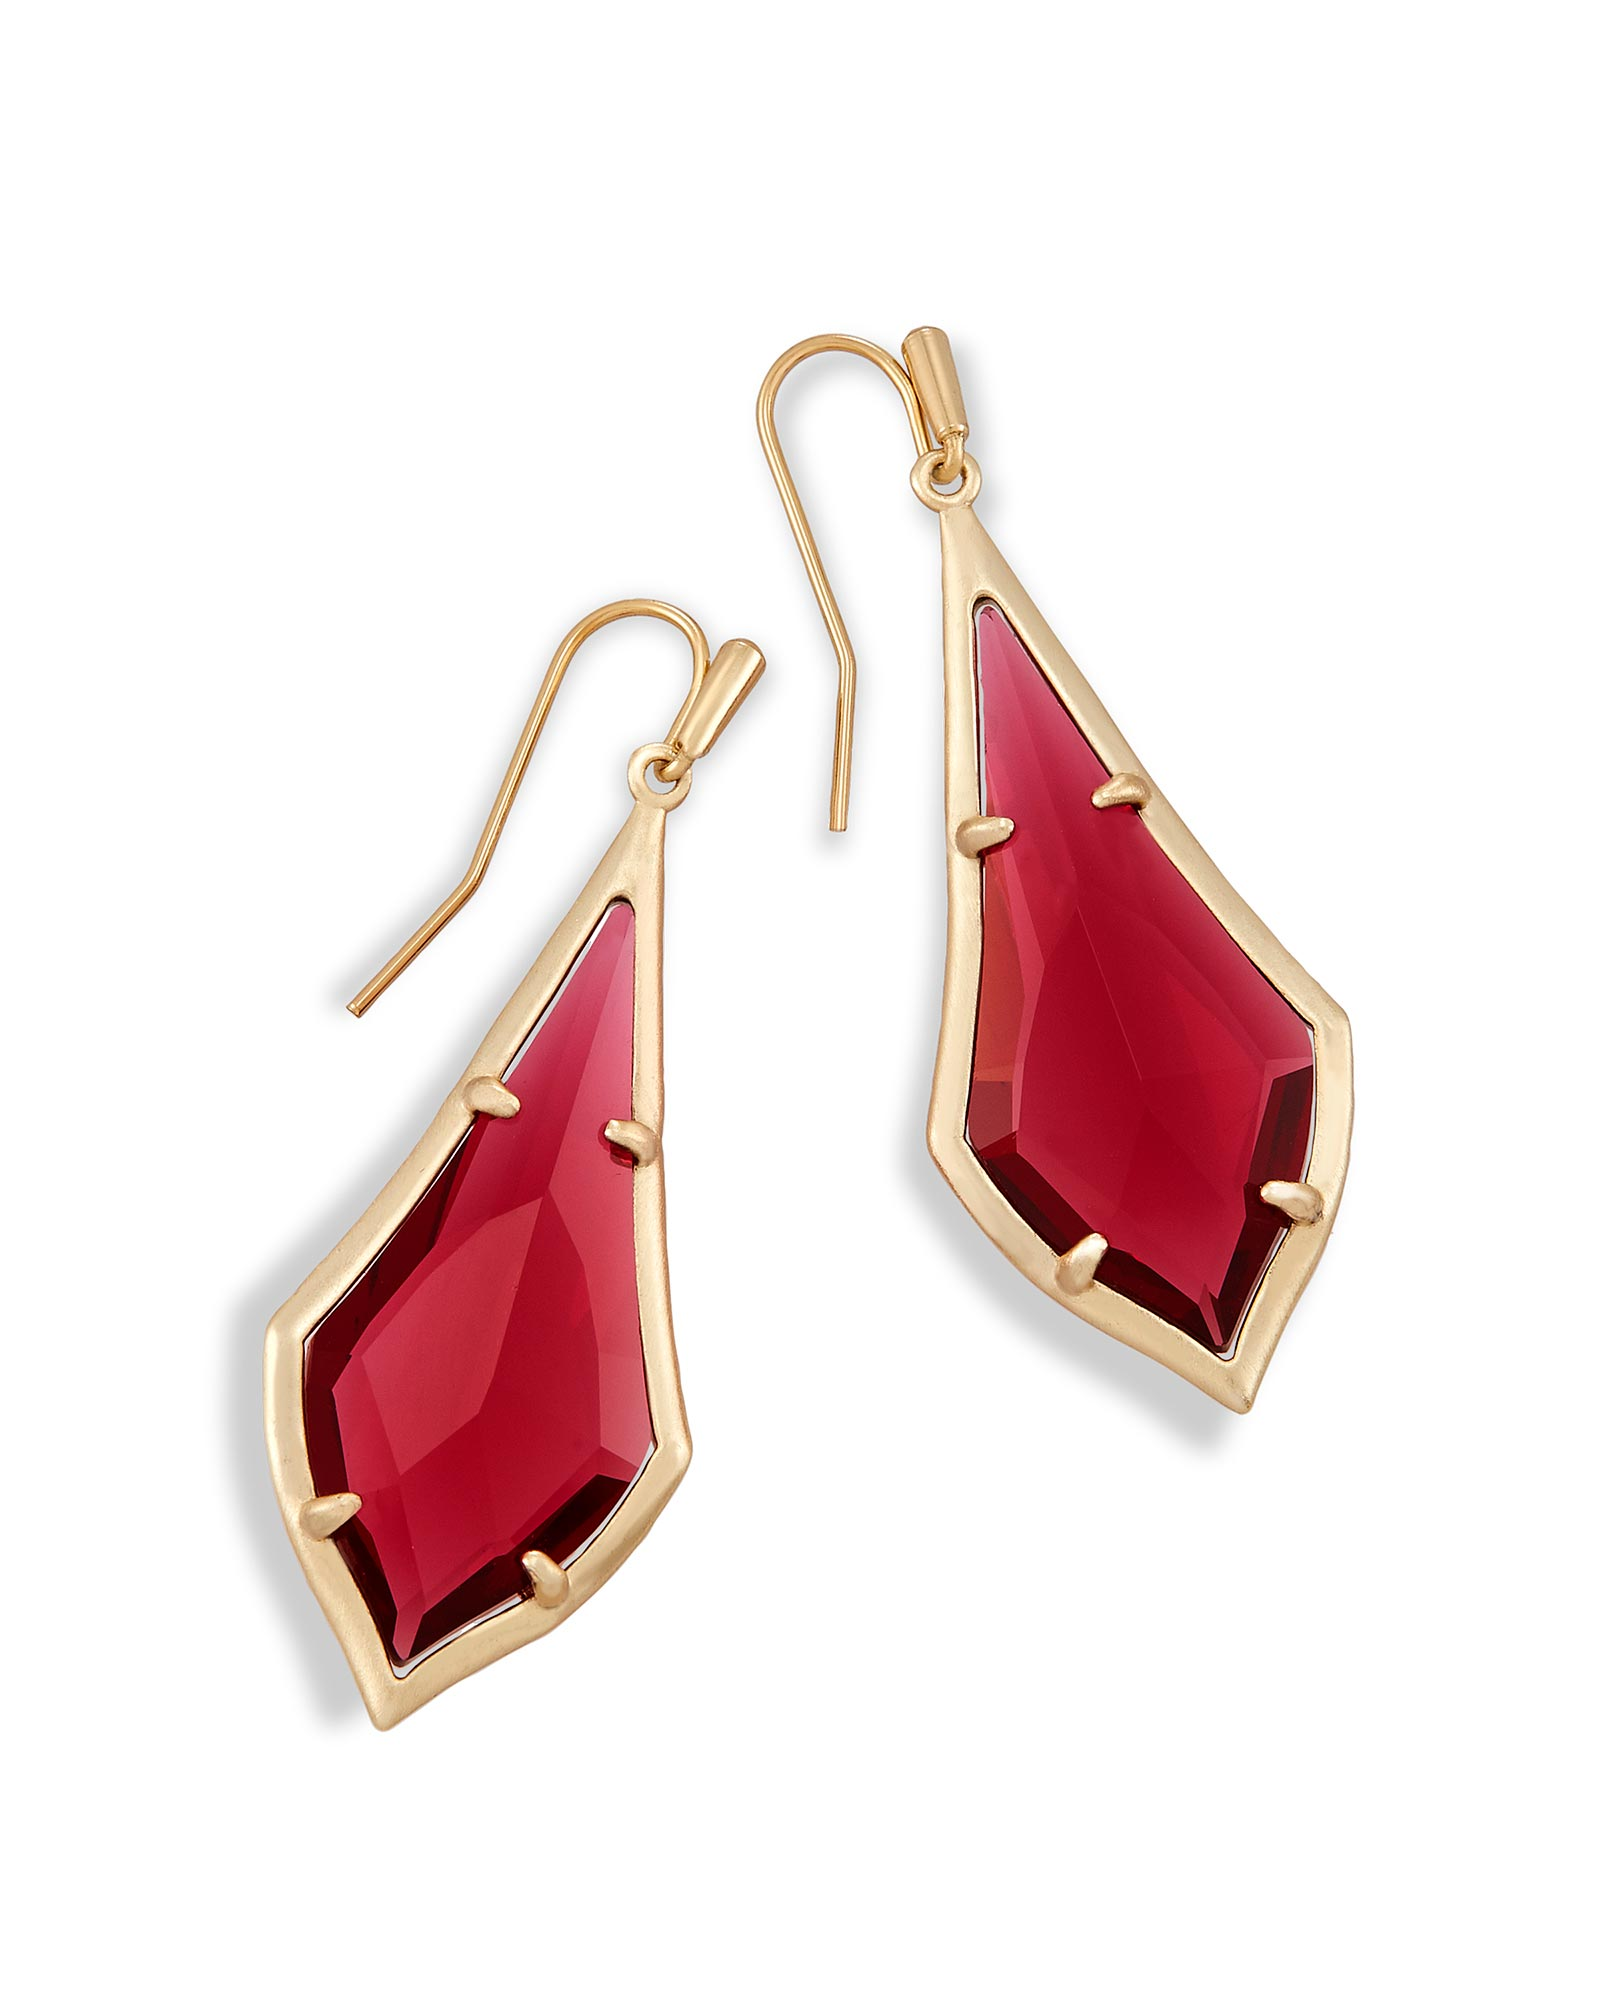 Olivia Drop Earrings in Berry Glass